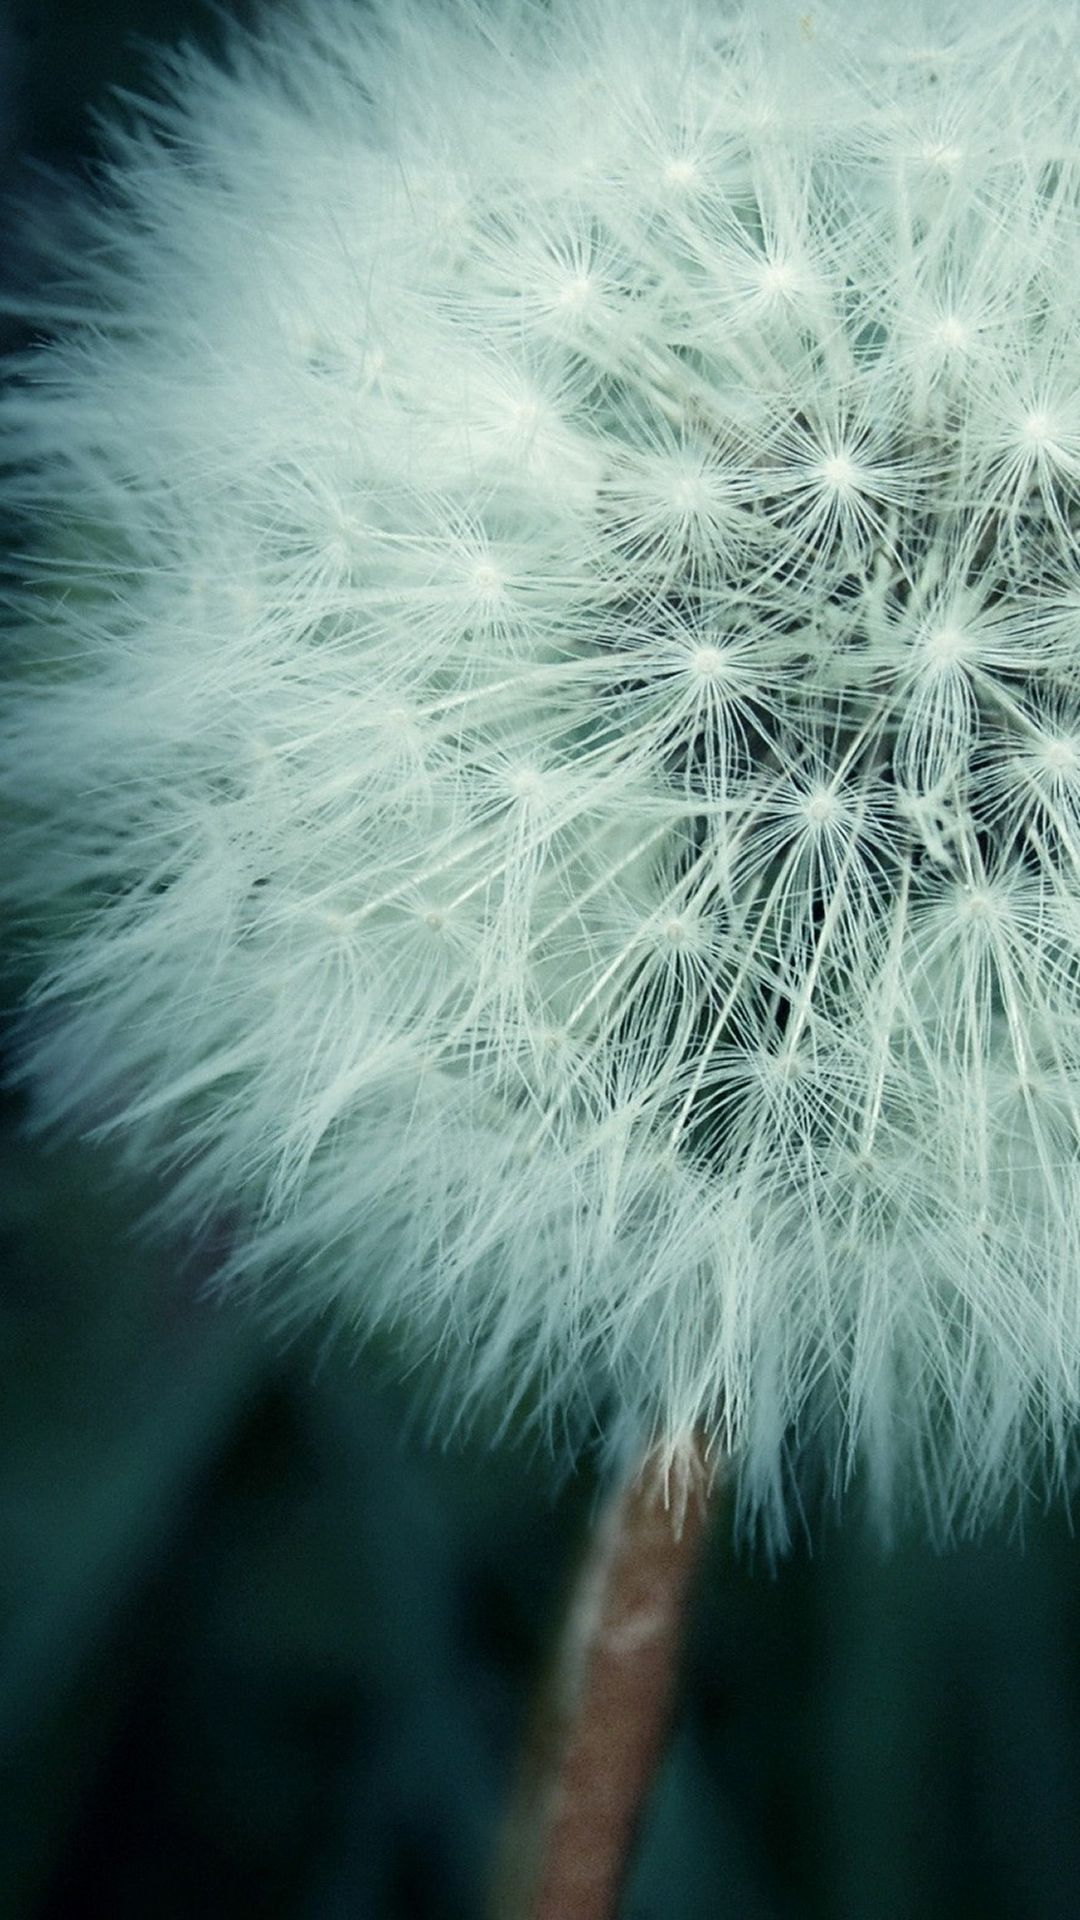 best Dandelions images on Pinterest Dandelions Nature and